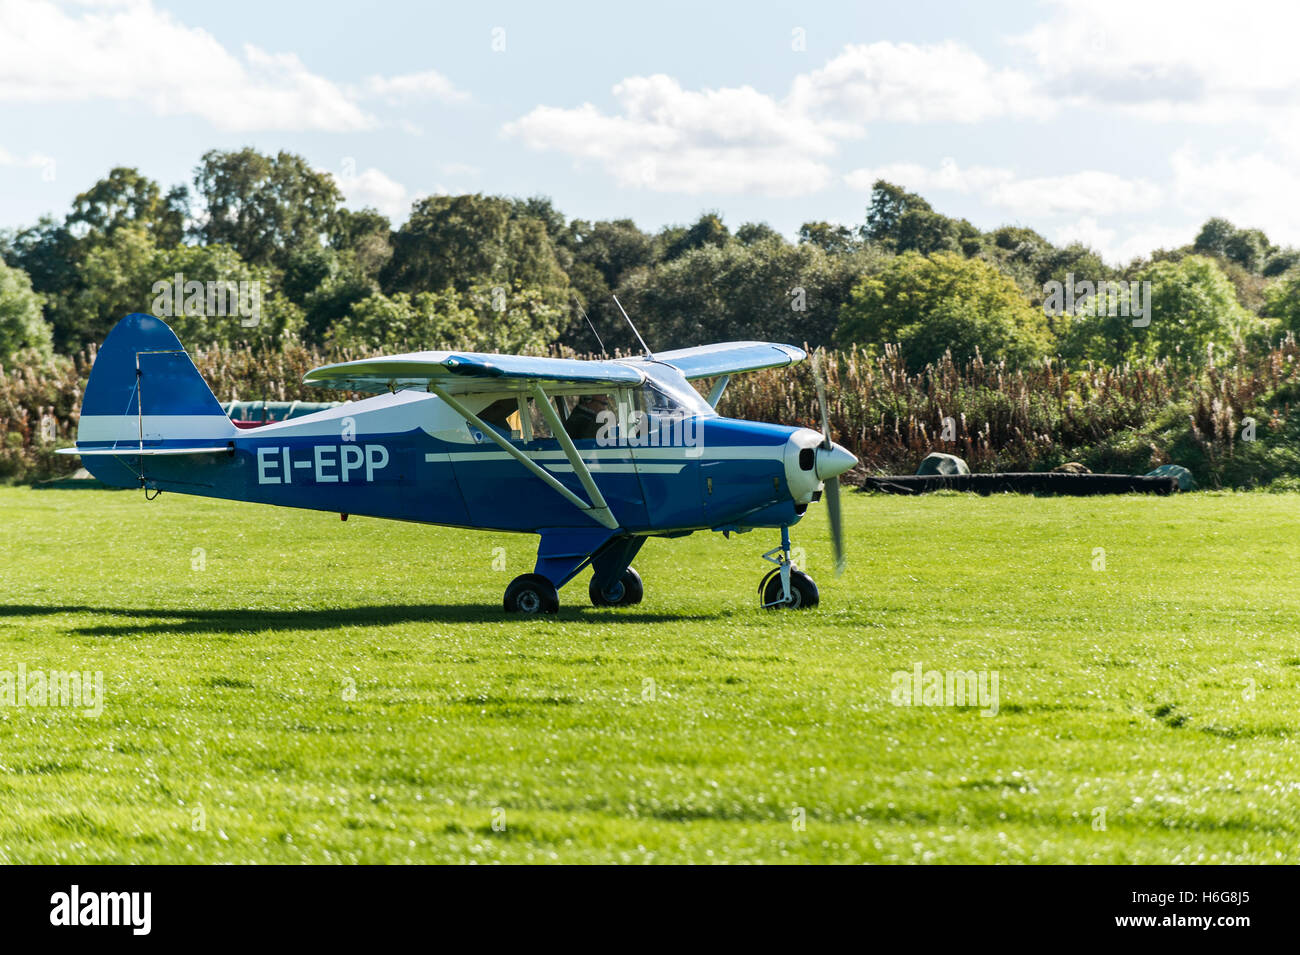 1960 Piper PA-22-160 Tri Pacer Aircraft preparing to take off. - Stock Image